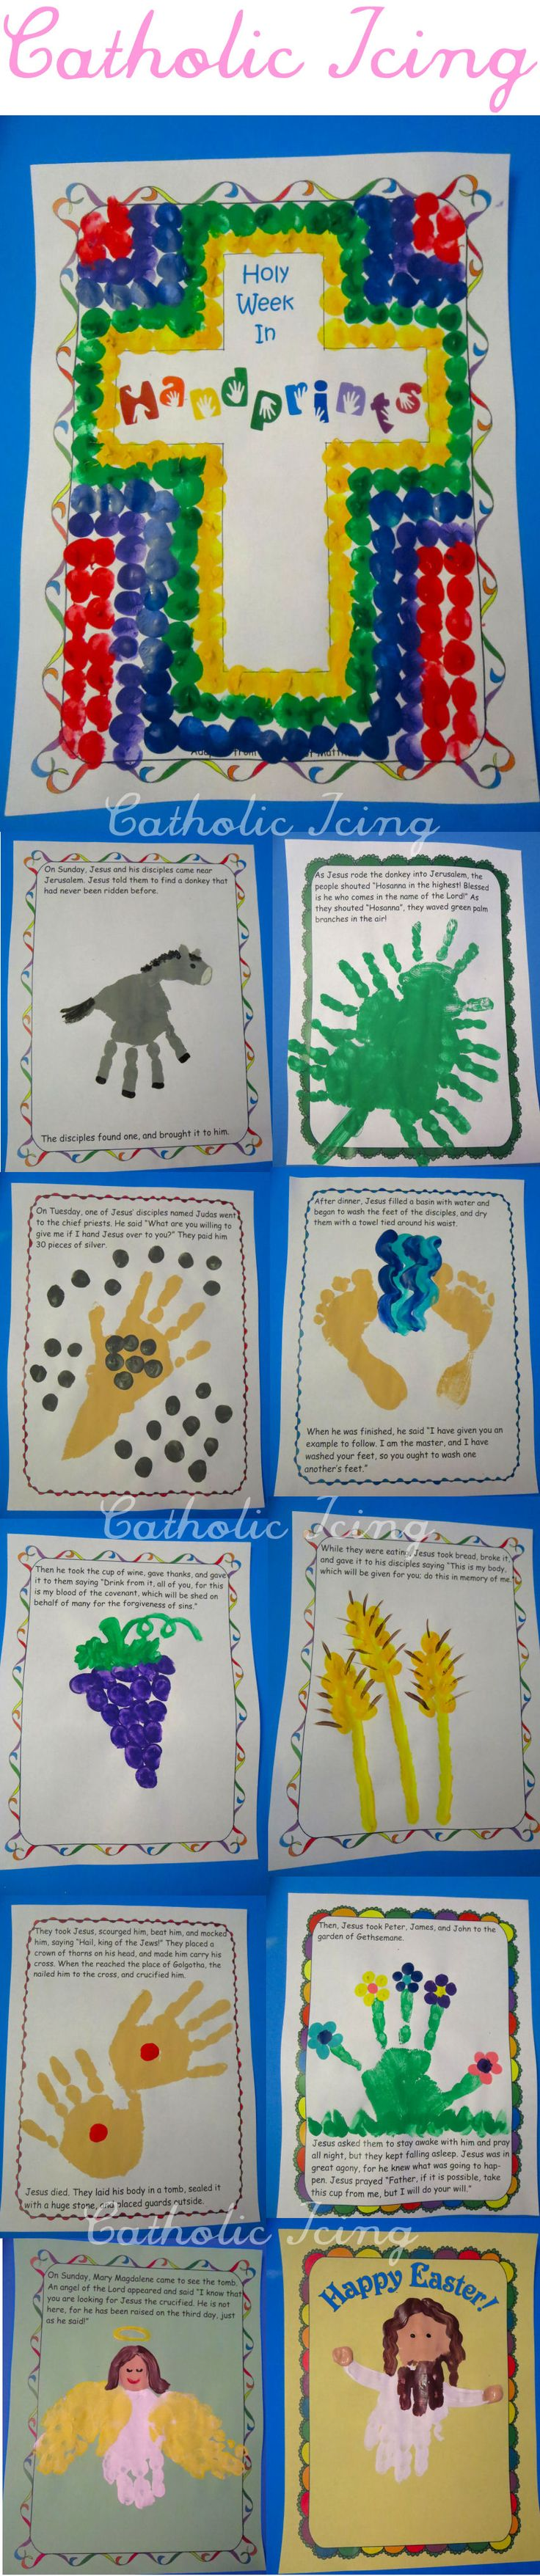 Holy Week in handprints- the book is already written, but you create the illustrations through Holy Week using your handprints. So fun!